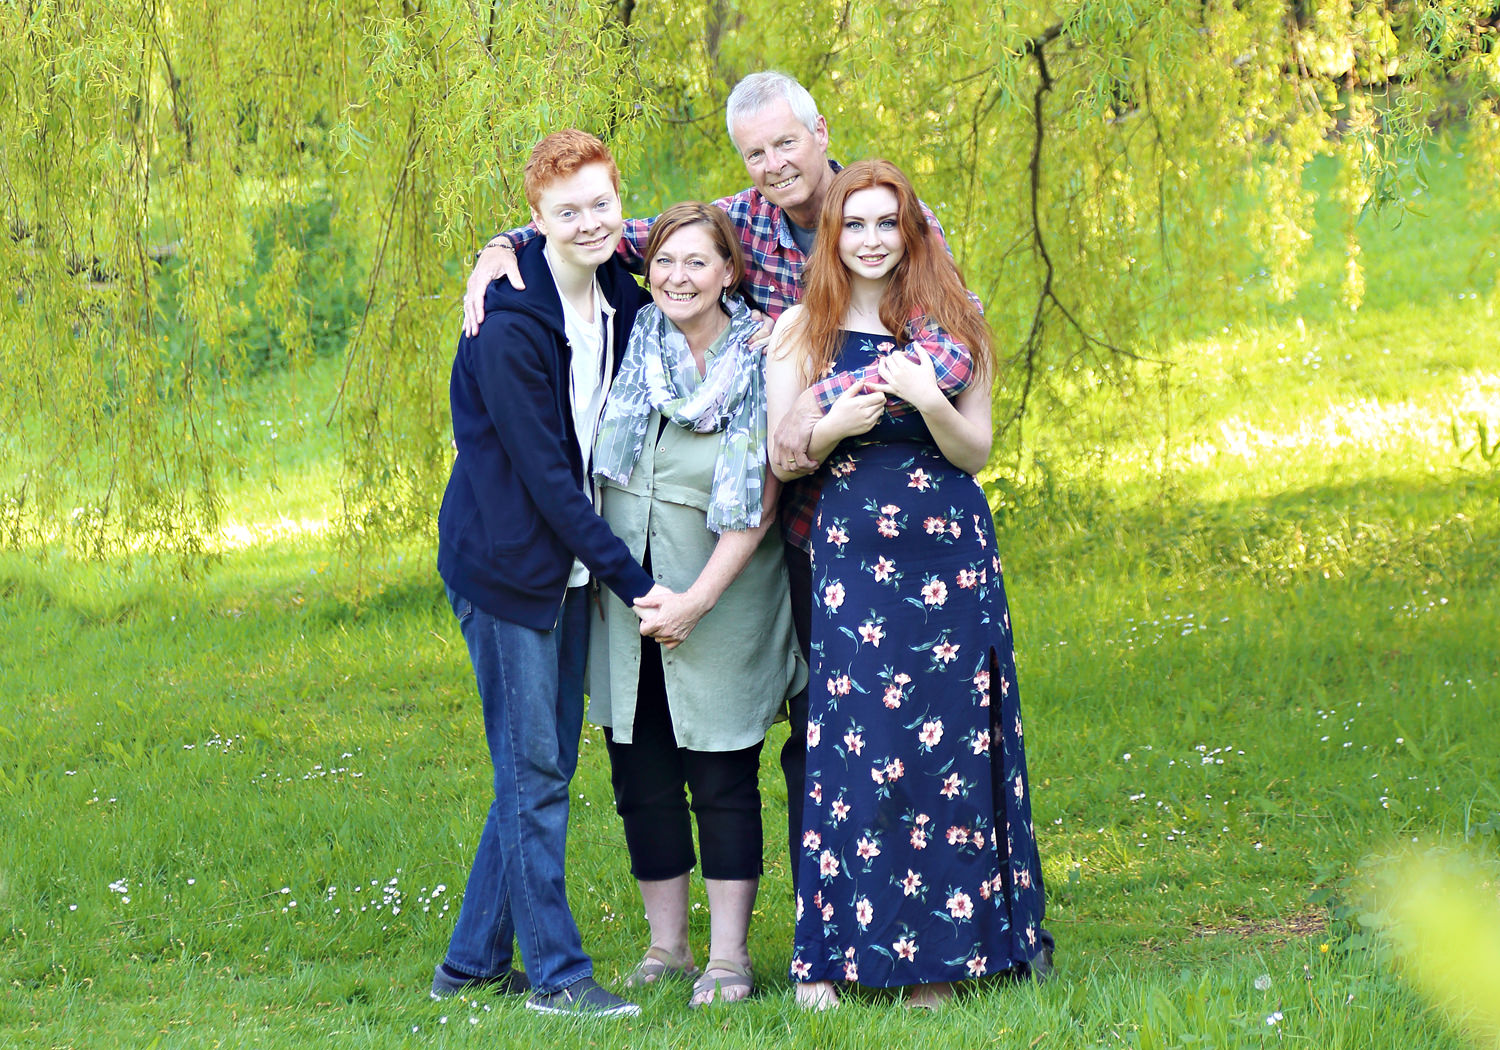 Family photo shoot in Dyffryn Gardens South Wales